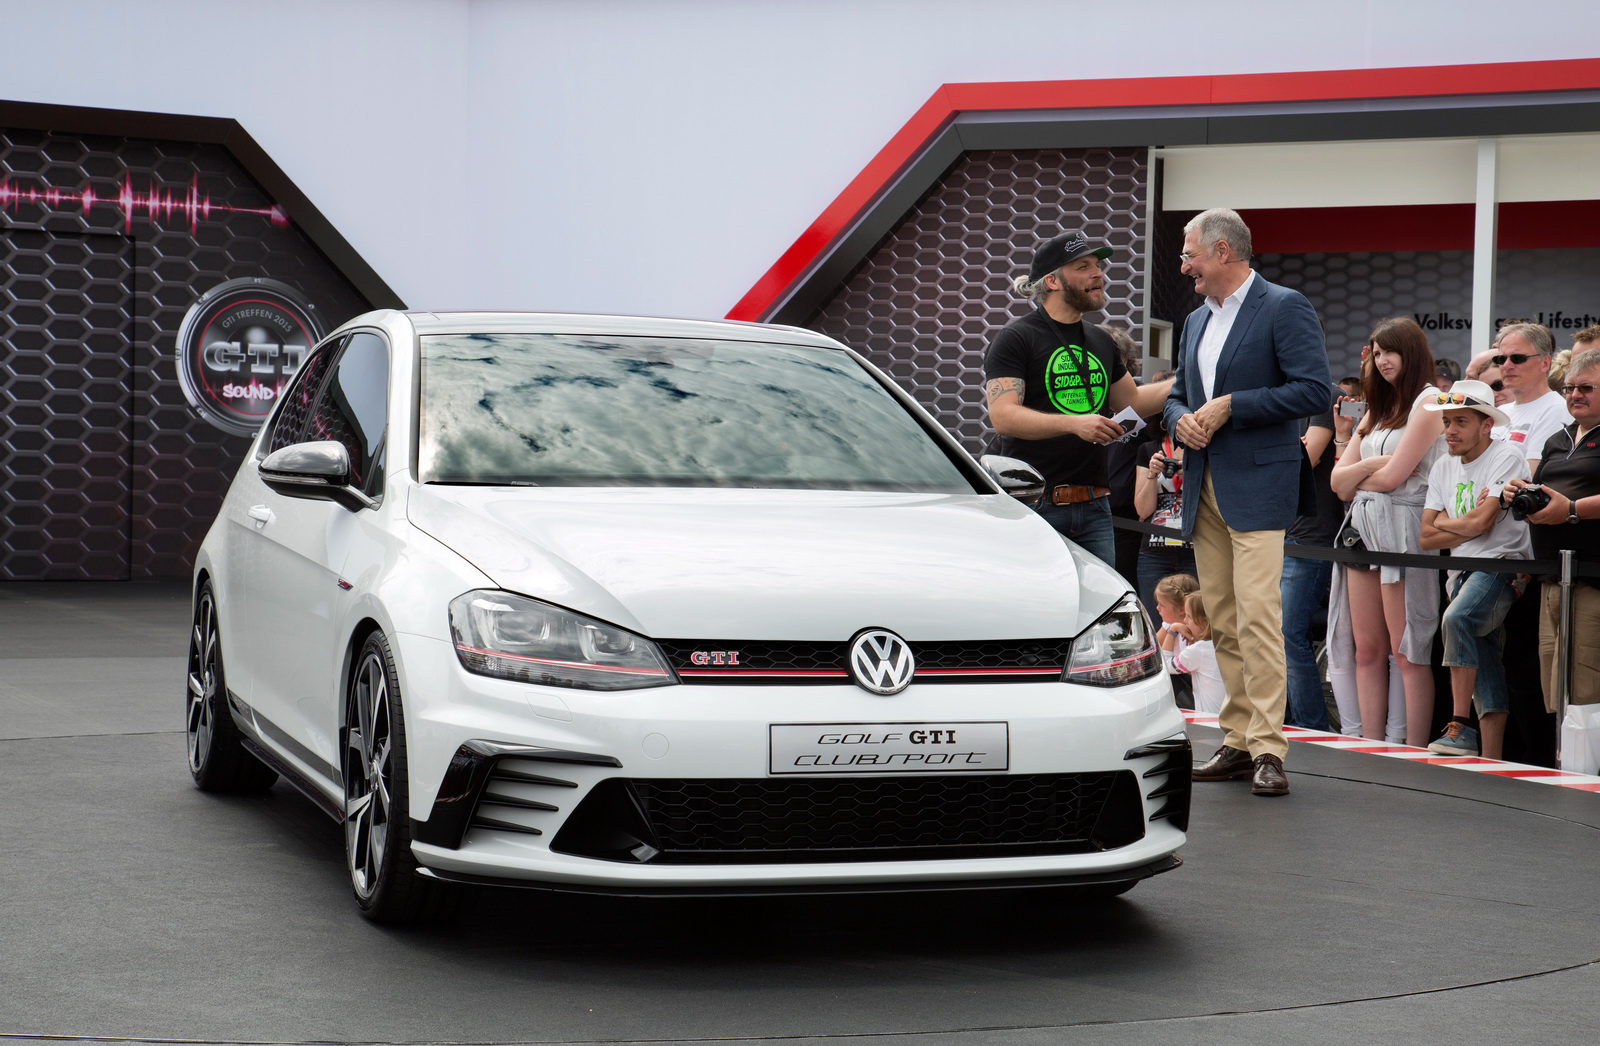 2016 Volkswagen Golf Gti Clubsport Front Angle (Photo 6 of 10)